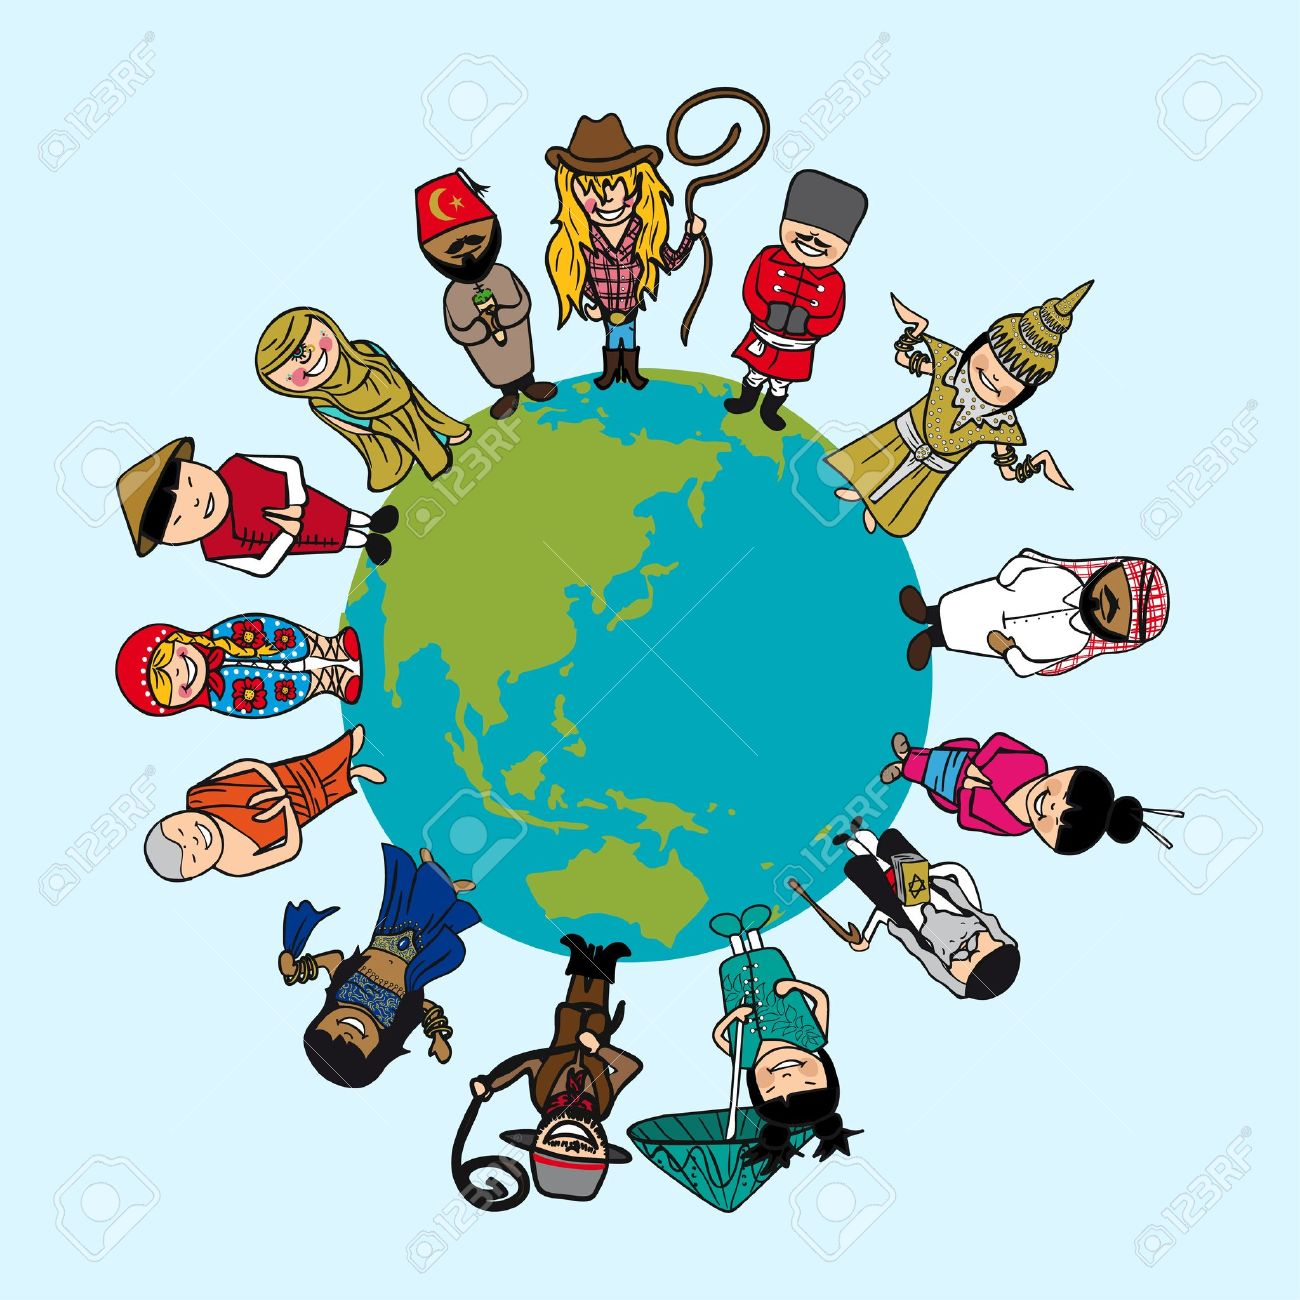 World Map, Diversity People Cartoons With Distinctive Outfit ...